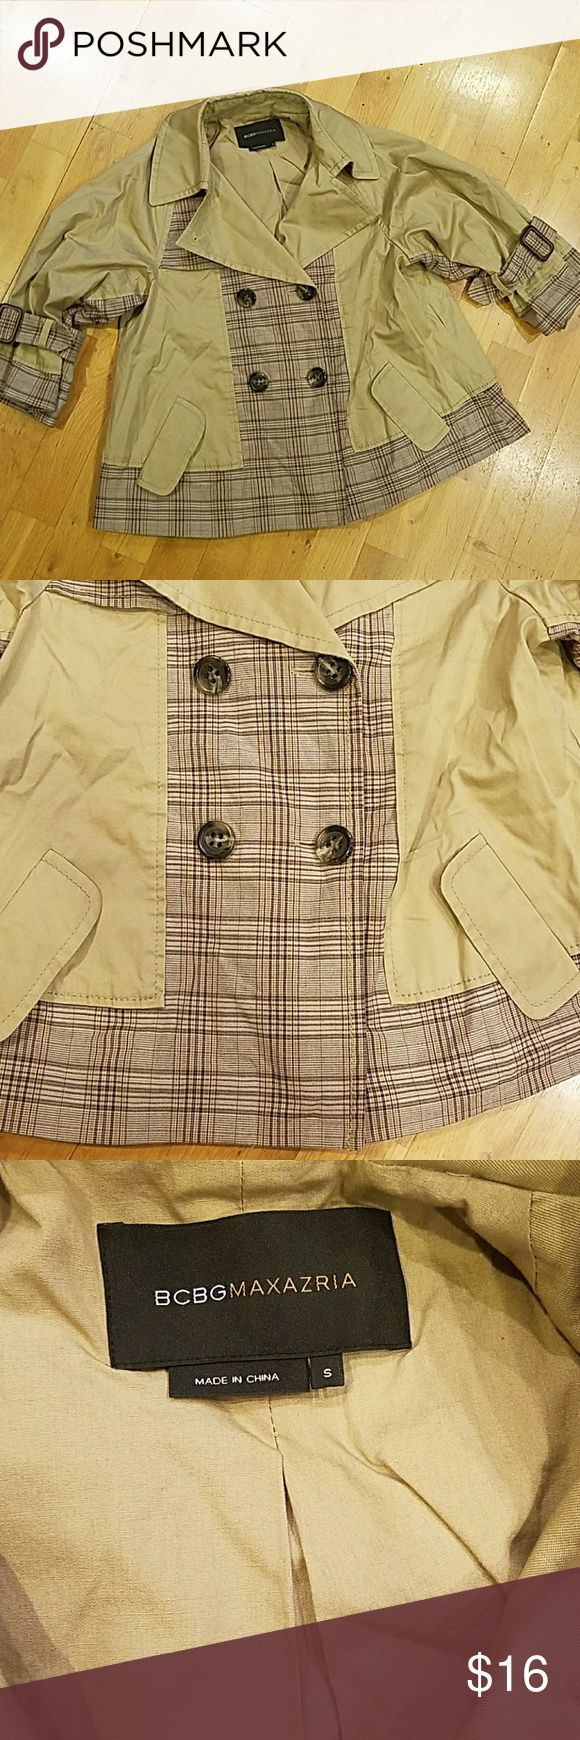 So Cute BCBGMAXAZRIA Jacket Small So Cute BCBGMAXAZRIA Jacket Small 3/4 sleeve Very detailed Can dress up or down Lined and very well made BCBGMaxAzria Jackets & Coats